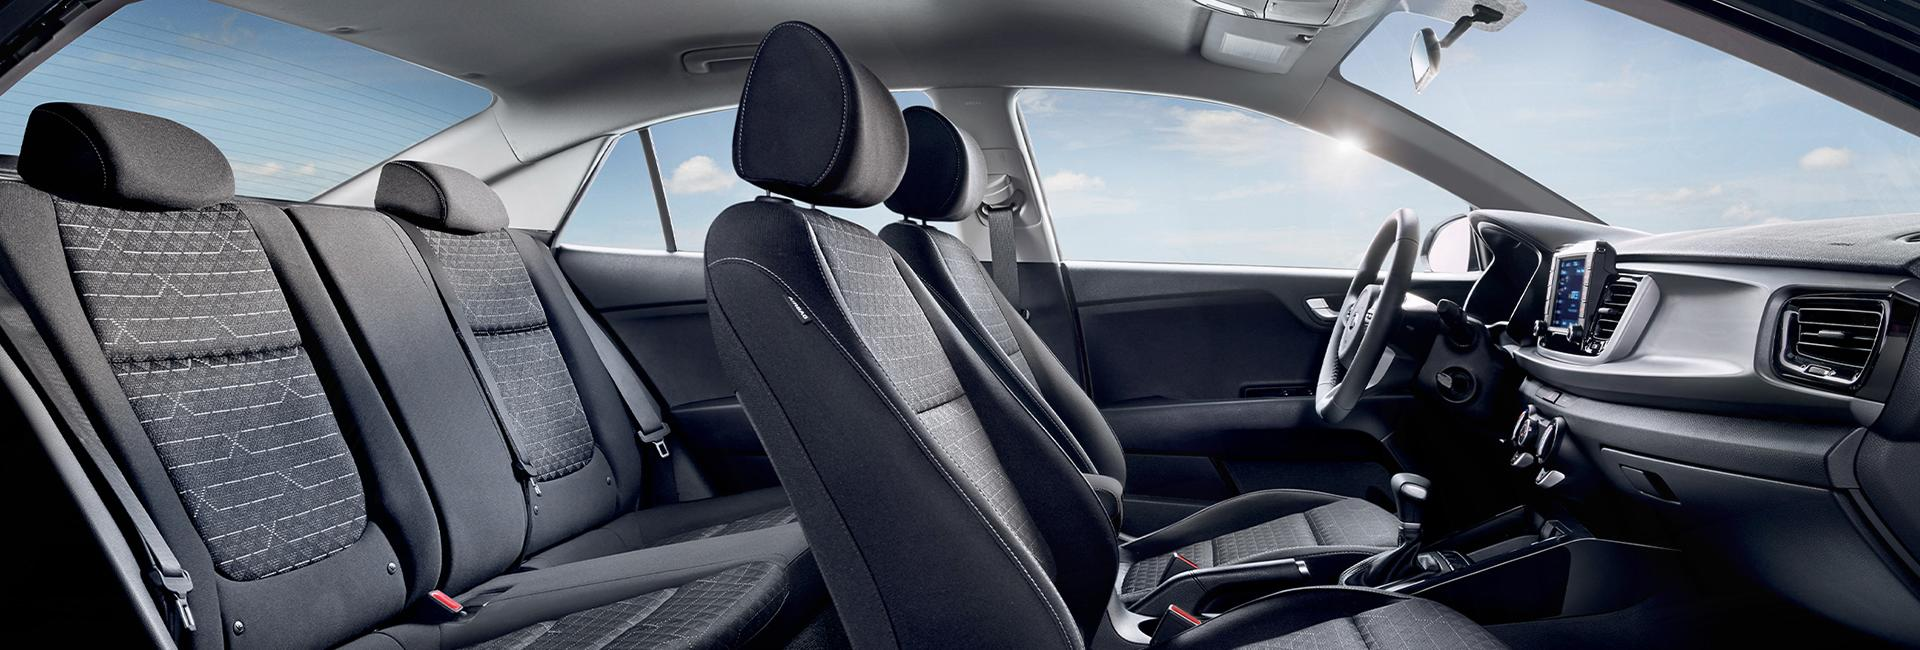 Picture of the interior of the 2020 Kia Rio.